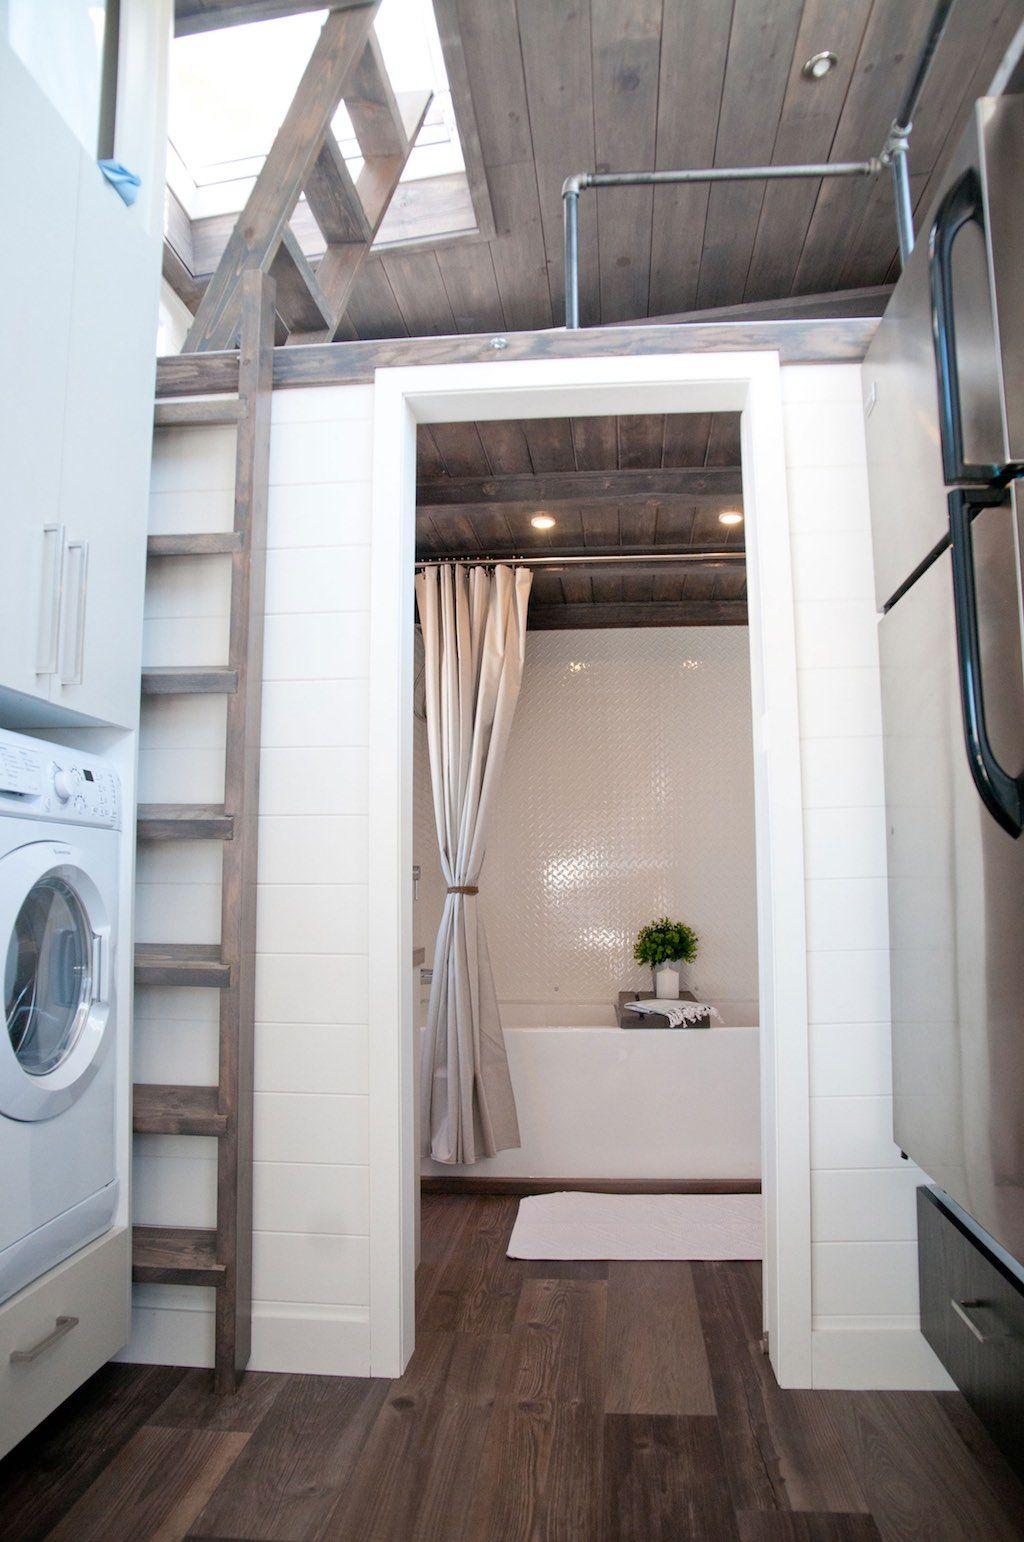 Tiny house with private bedroom offers minimalist chic for Minimalist house on wheels